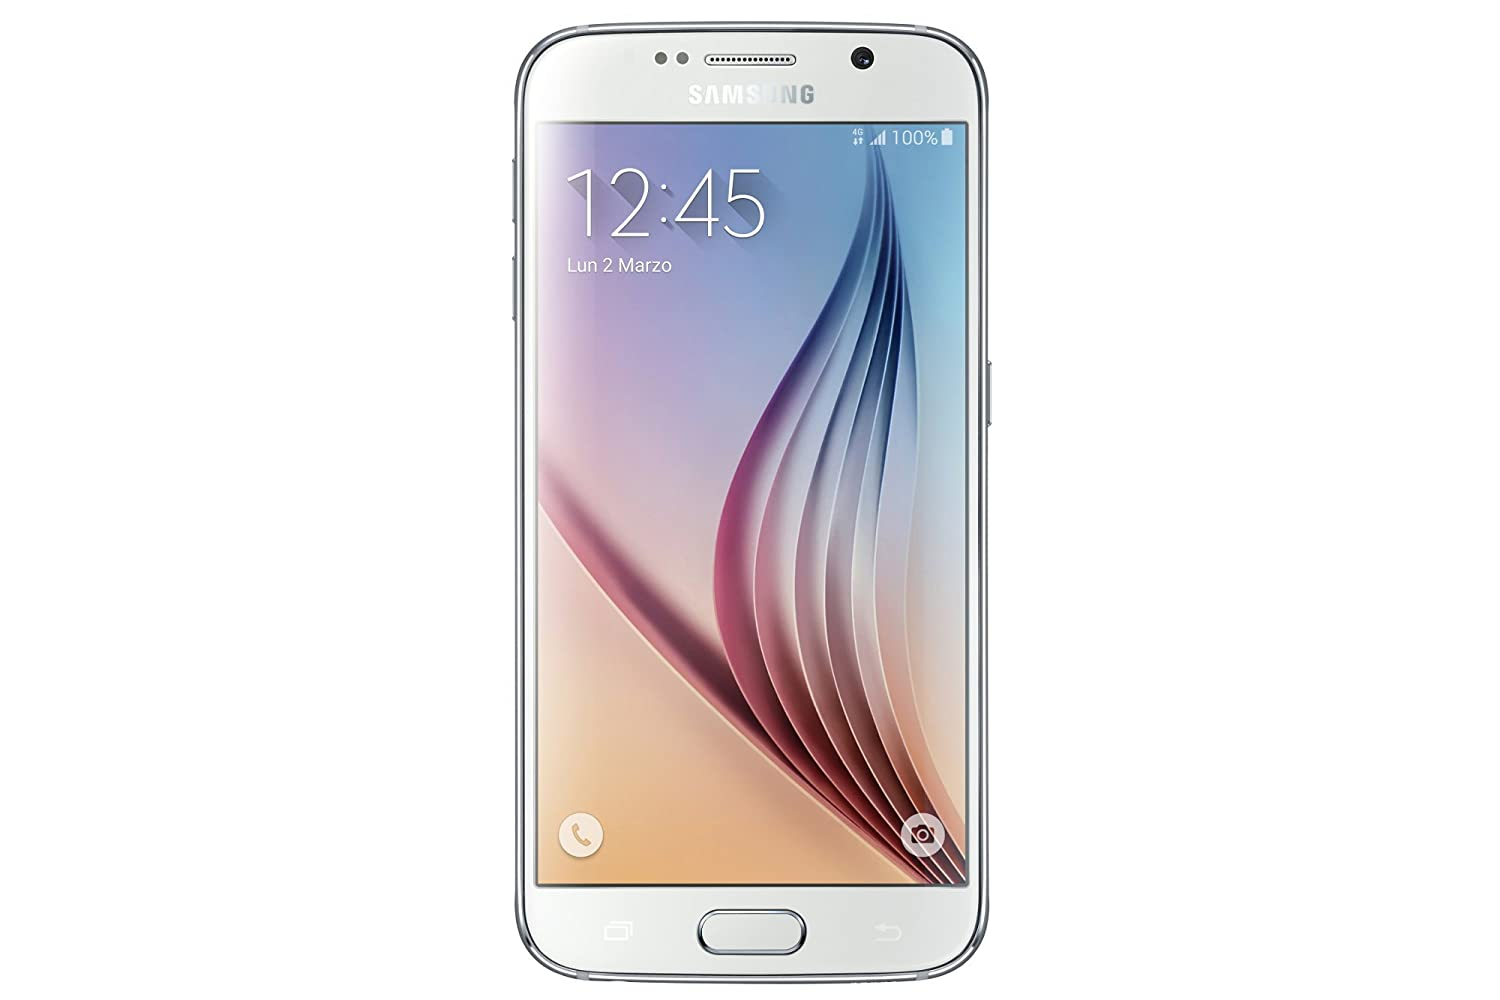 People are selling samsung galaxy s6 clones - Samsung Galaxy S6 G920f Unlocked Cell Phone International Sourced Version White Pearl